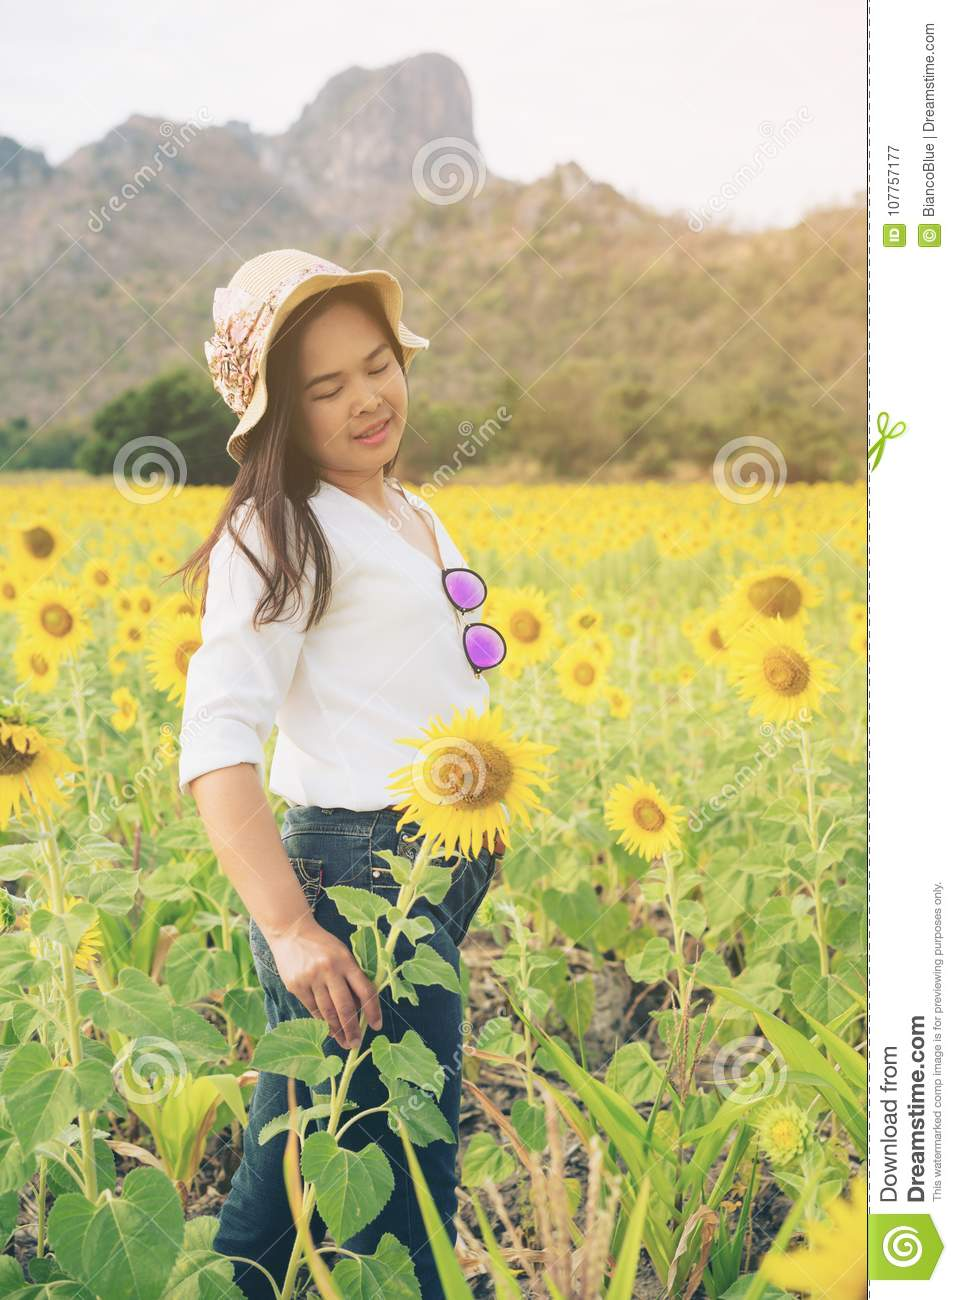 How to care for the flower of female happiness